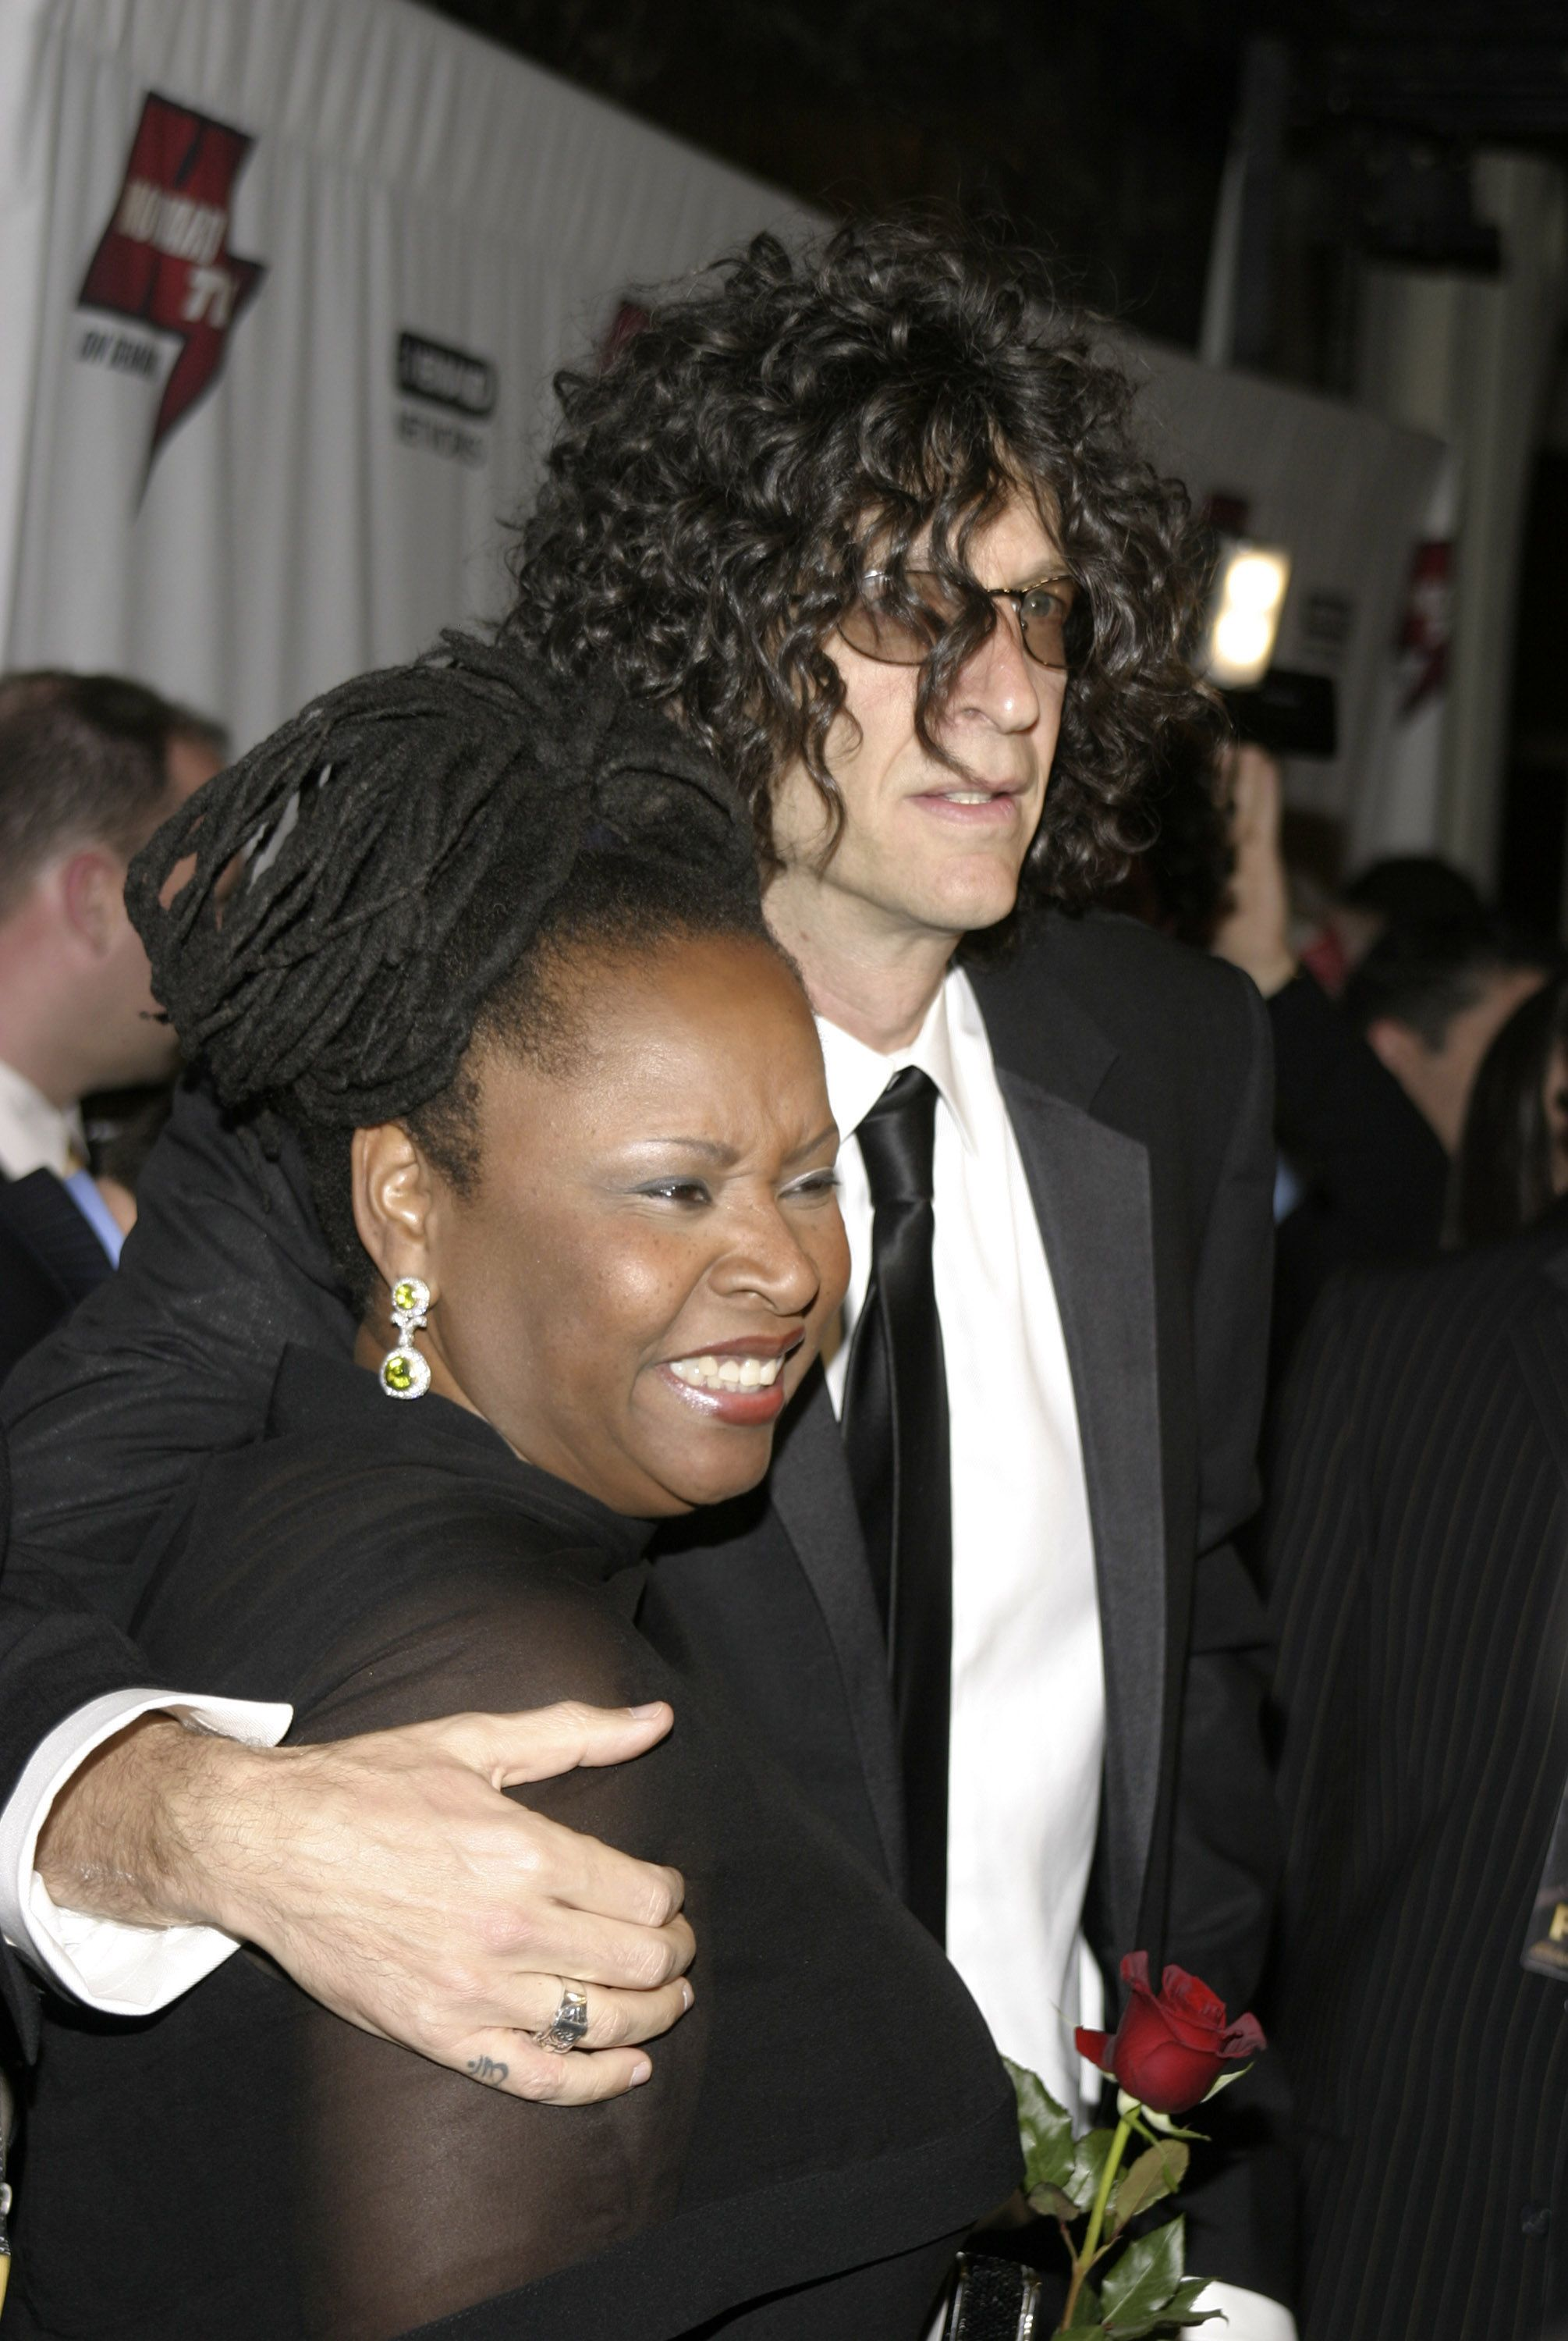 Howard Stern and Robin Quivers at  The Howard Stern Film Festival in New York City | Source: Getty Images